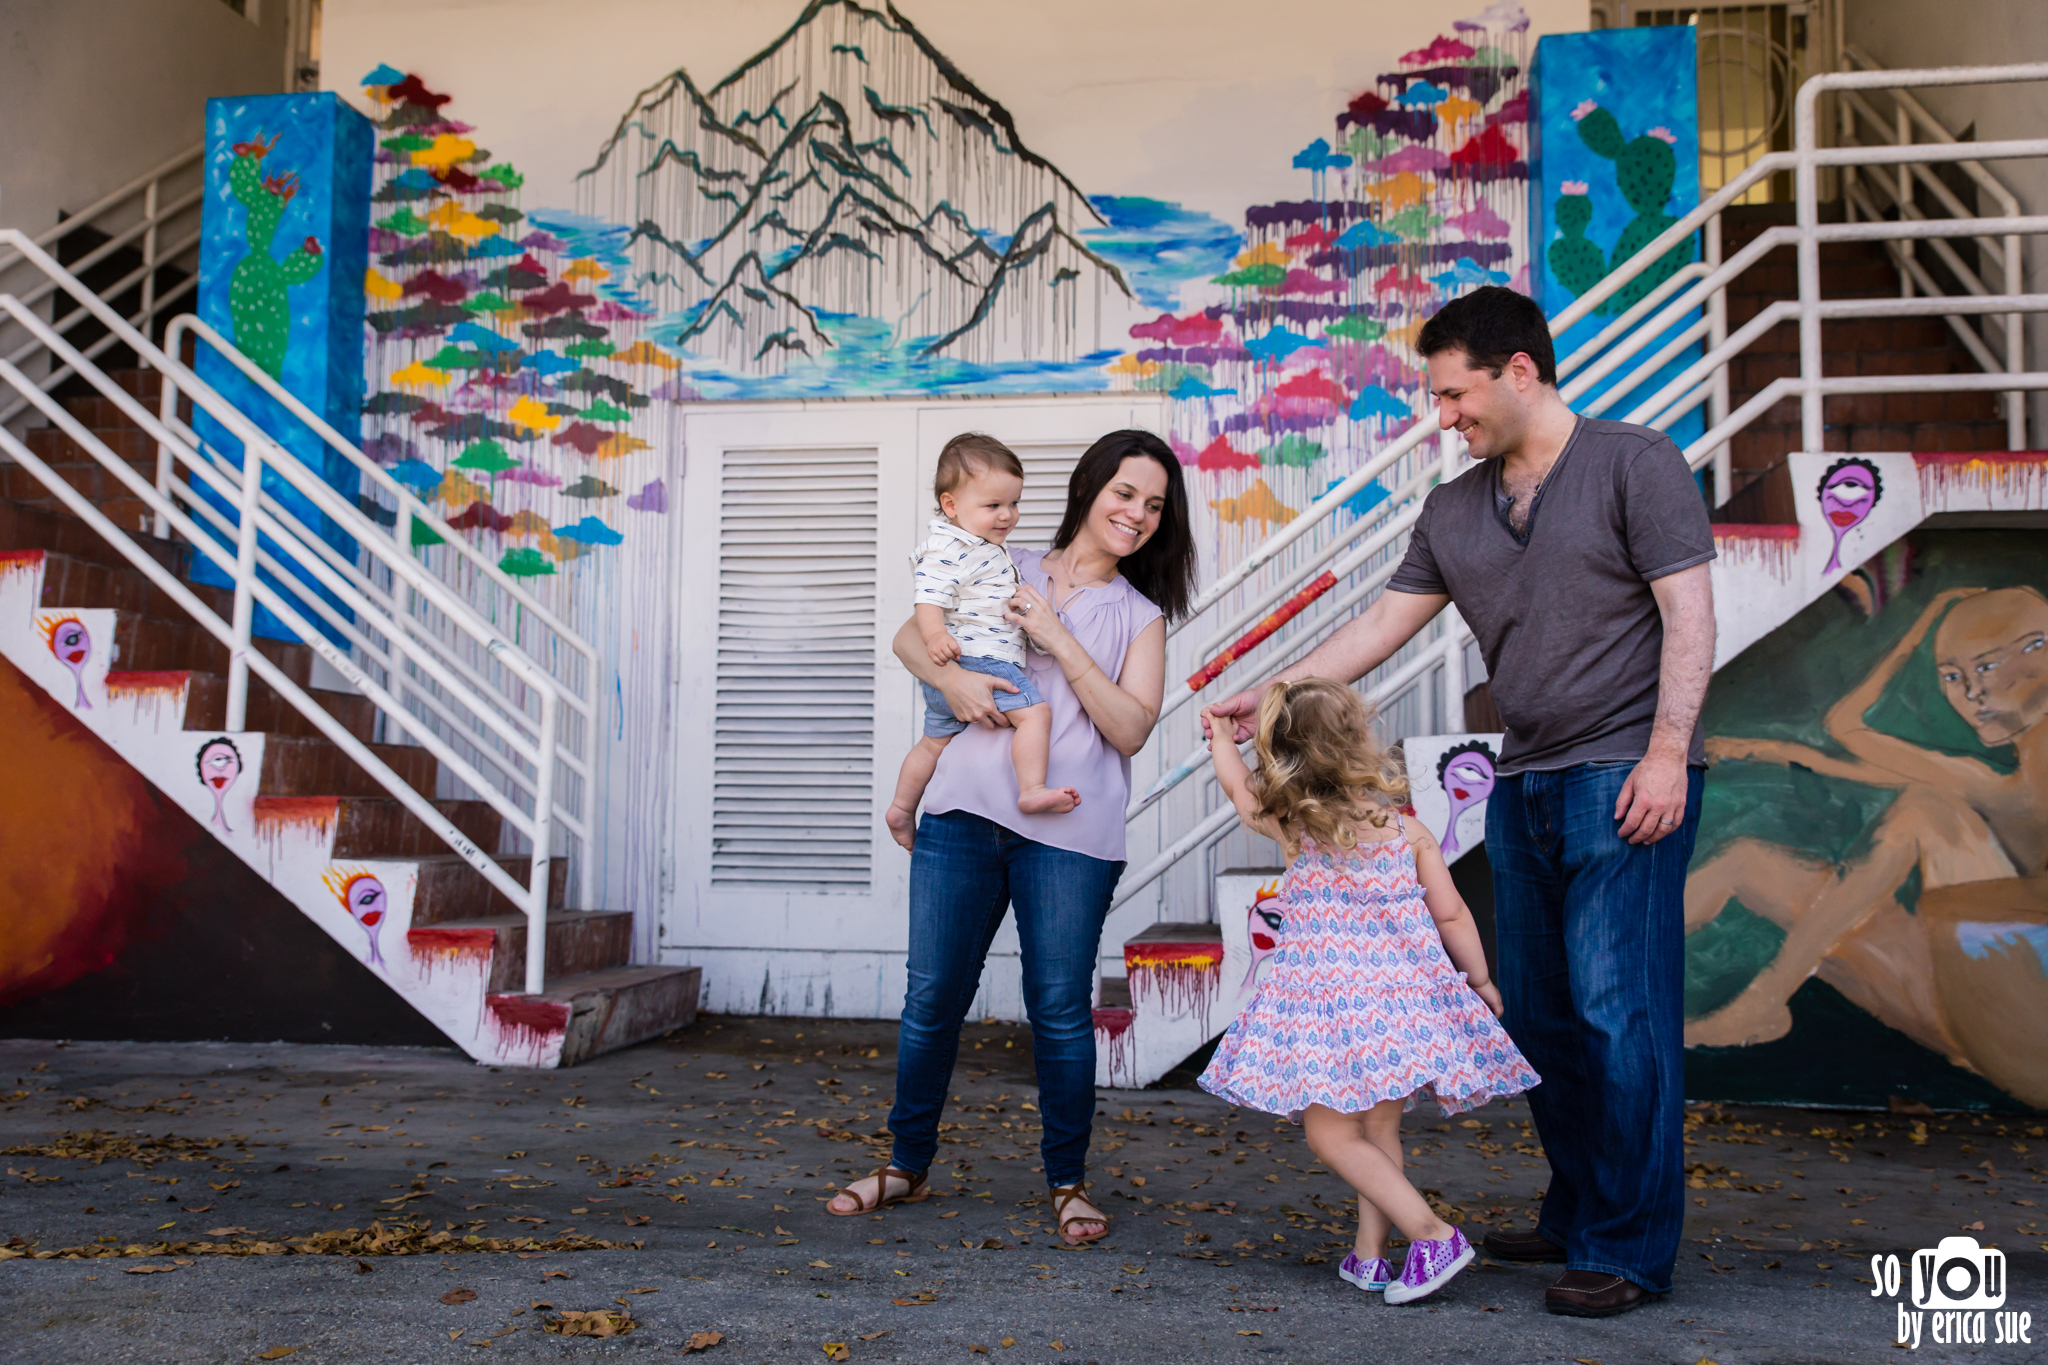 lifestyle-family-photography-miami-fl-so-you-by-erica-sue-2526.jpg